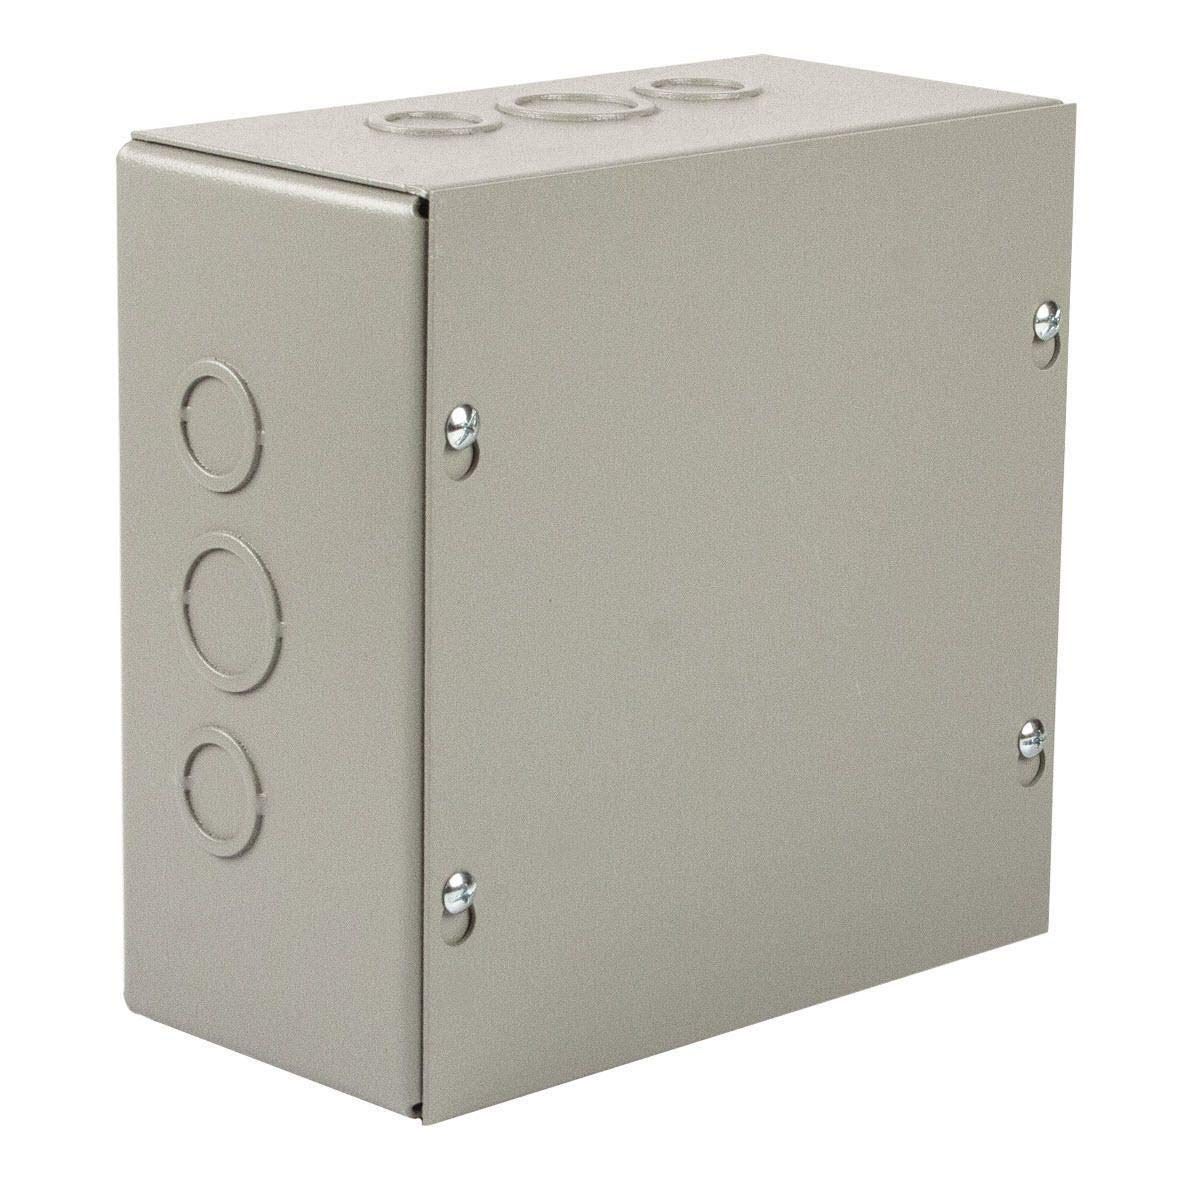 Wiegmann SC121806 SC-Series NEMA 1 Screw Cover Wallmount Pull Box with Knockouts, Painted Steel, 18'' x 12'' x 6''